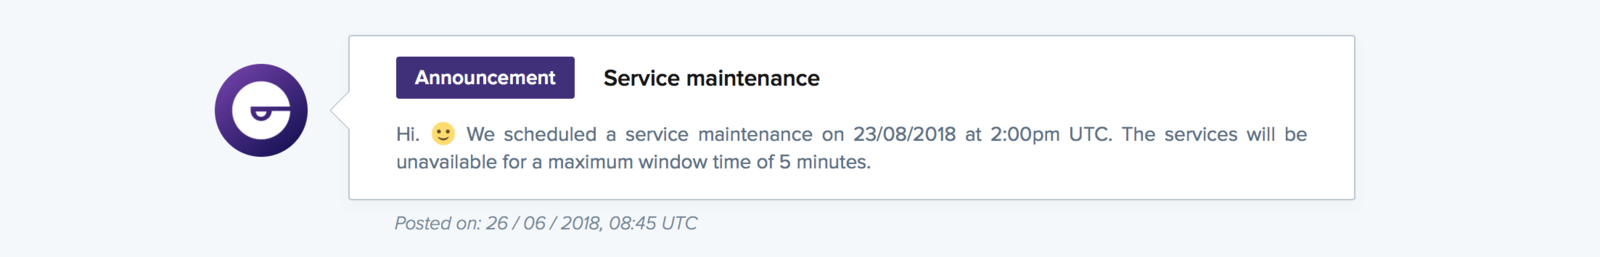 A maintenance announcement on a public status page